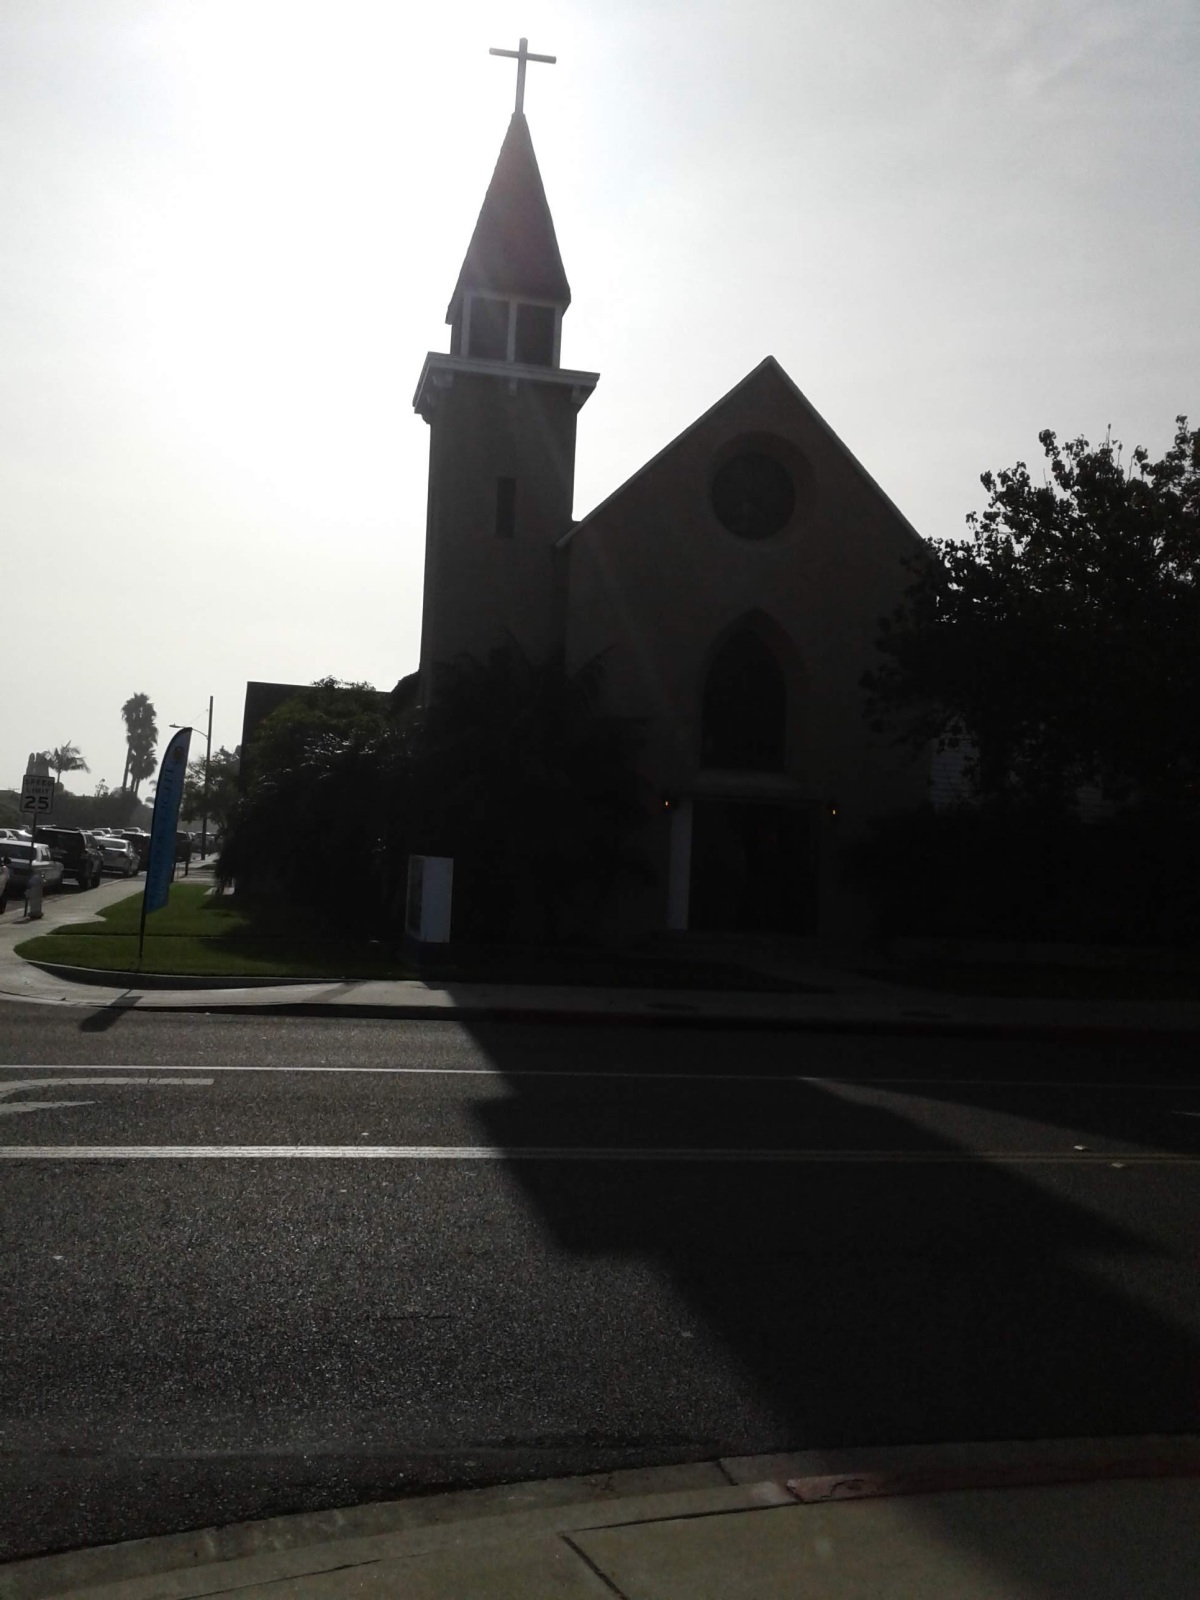 (Photography)-Picture of a church